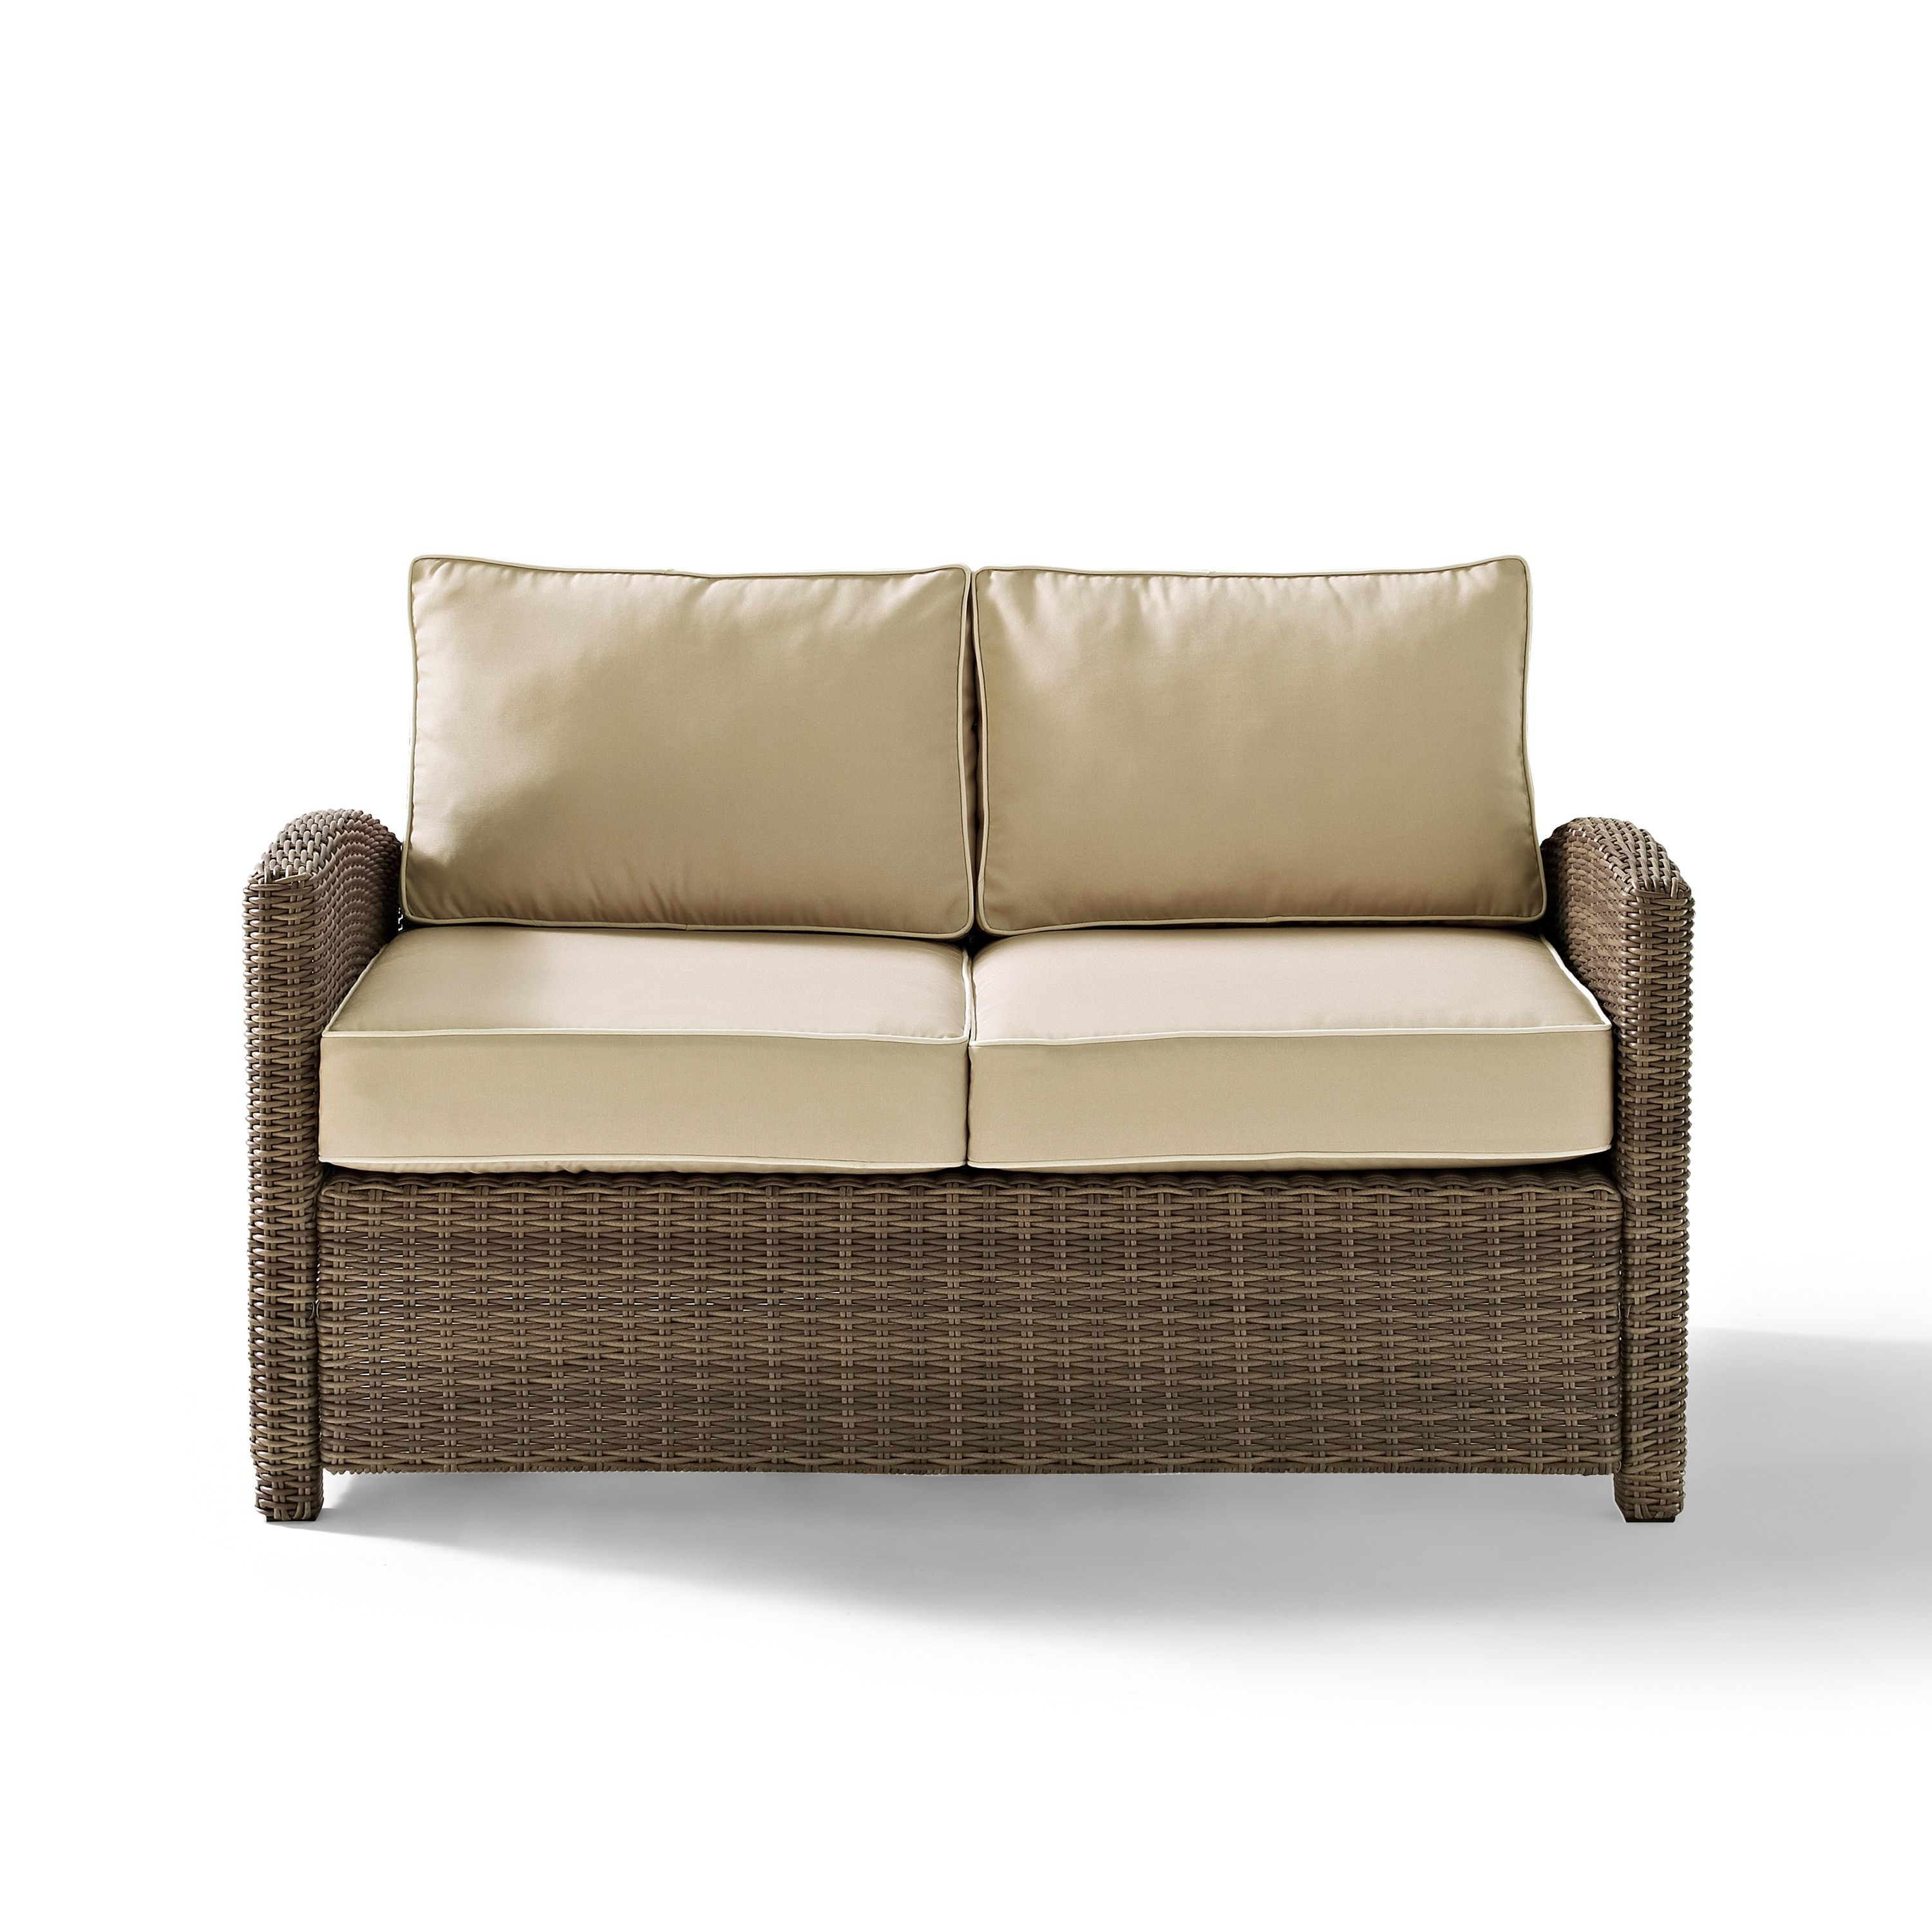 Bradenton Outdoor Wicker Loveseat With Sand Cushions By Crosley Furniture